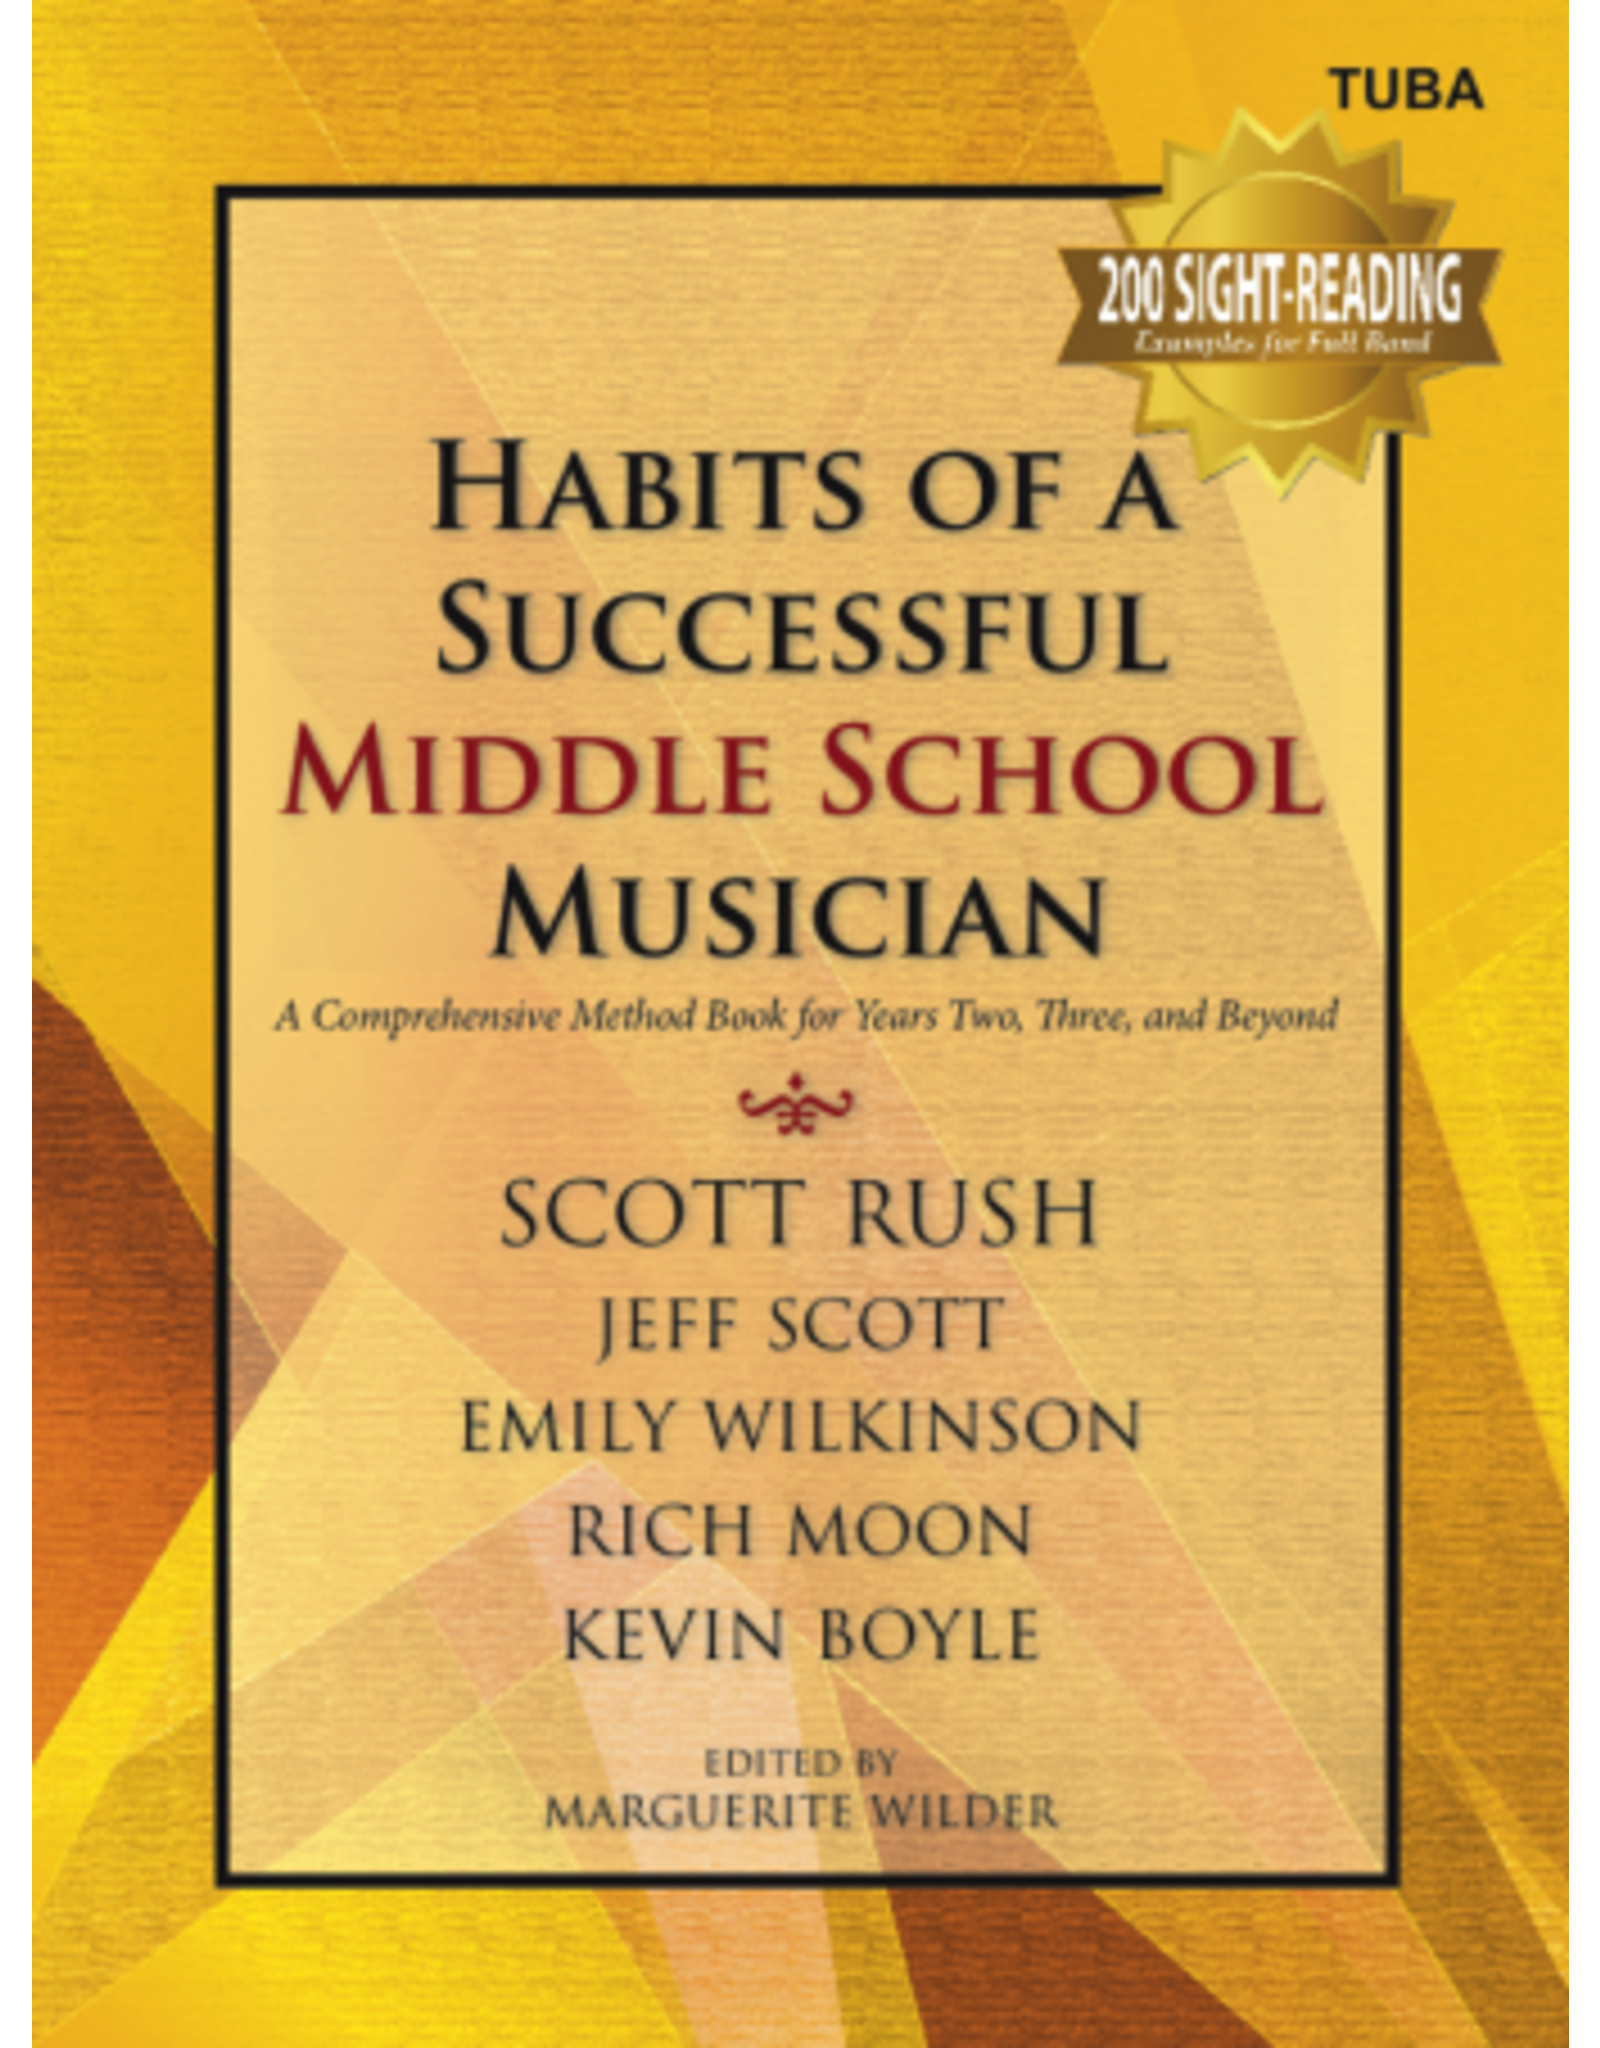 GIA Publications Habits of a Successful Middle School Musician-Tuba